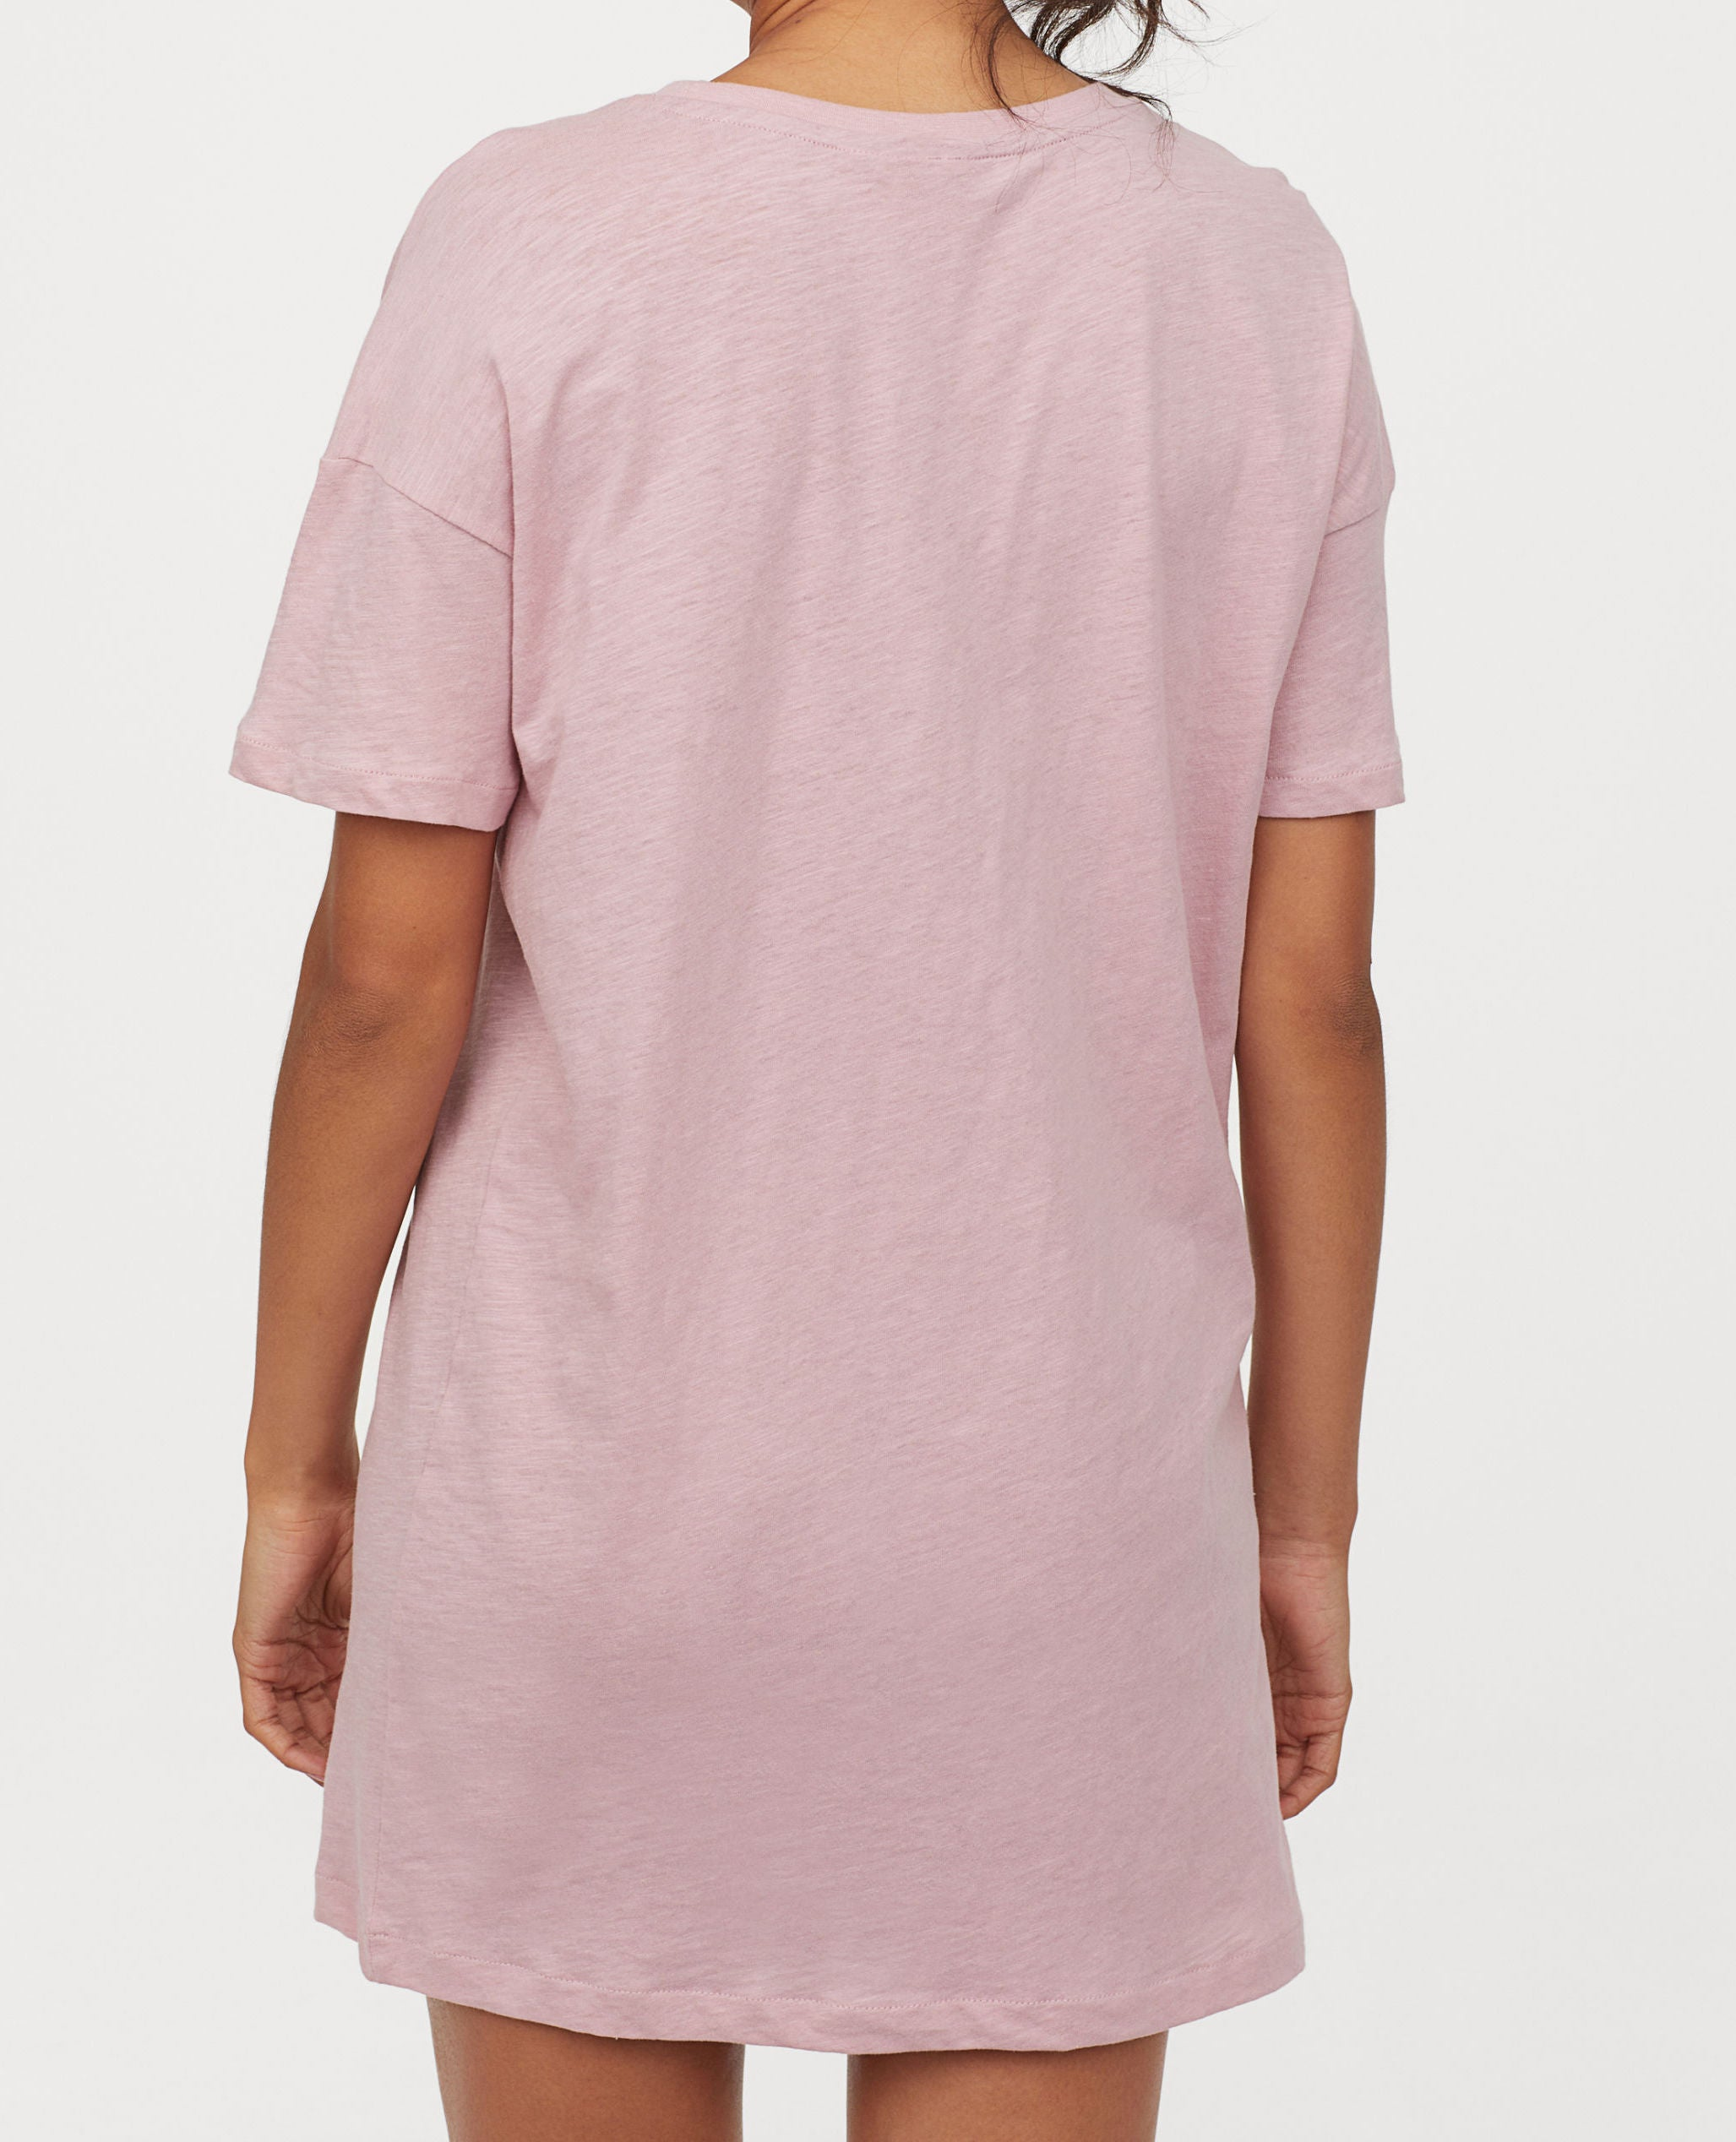 H&M nightgown- Pink